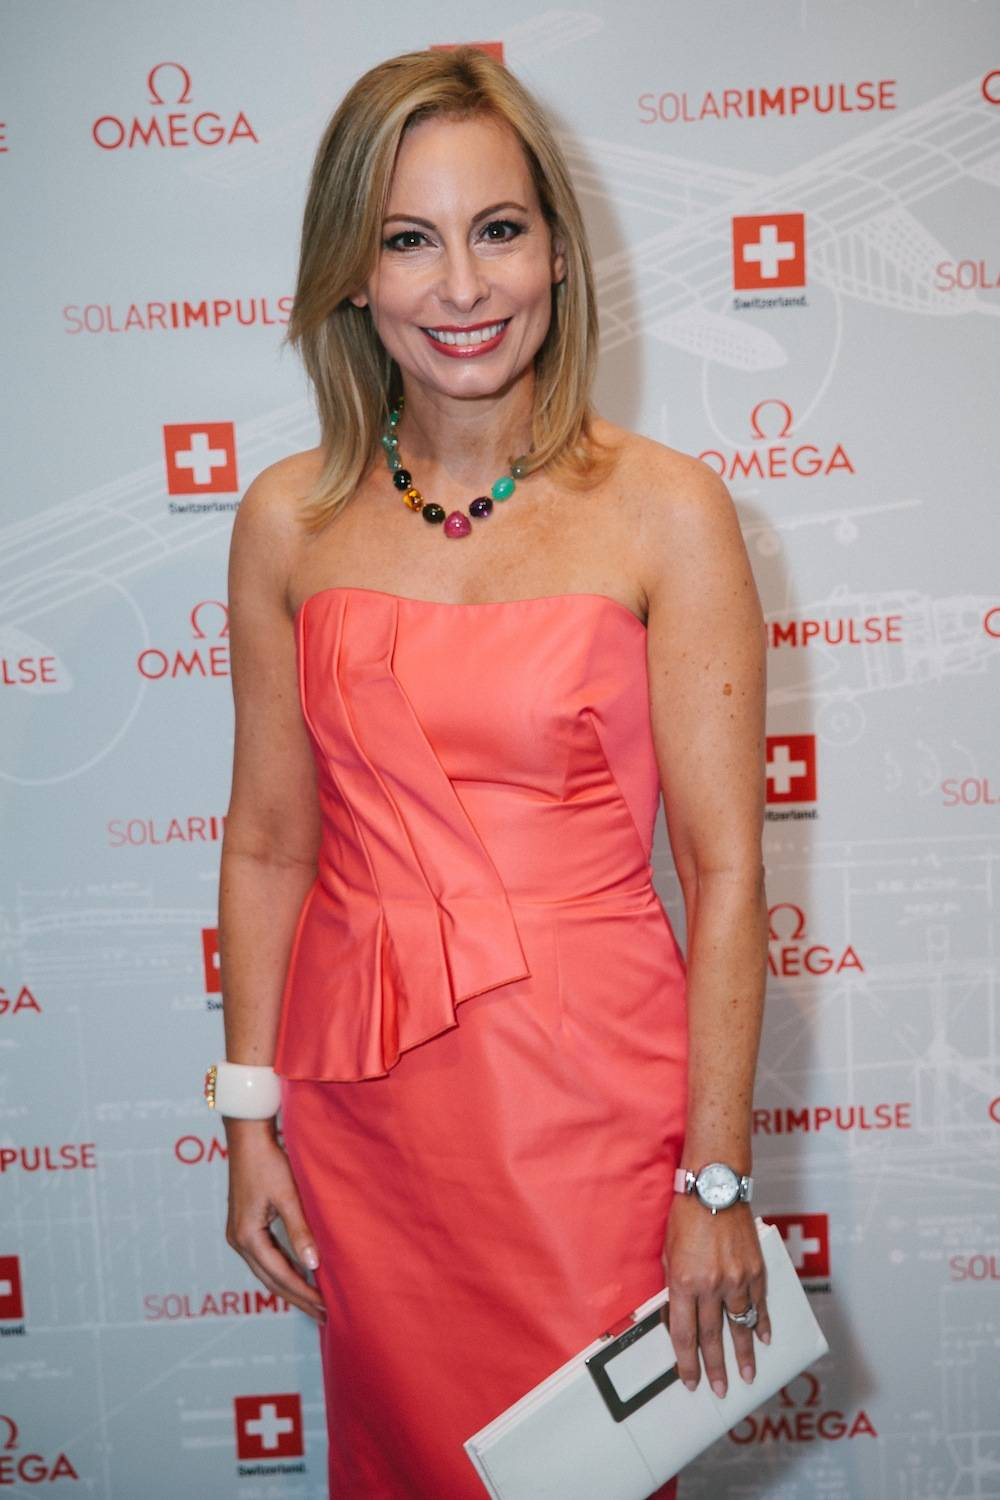 Gillian-Miniter-host-Committee-member-for-Solar-Impulse-Dinner